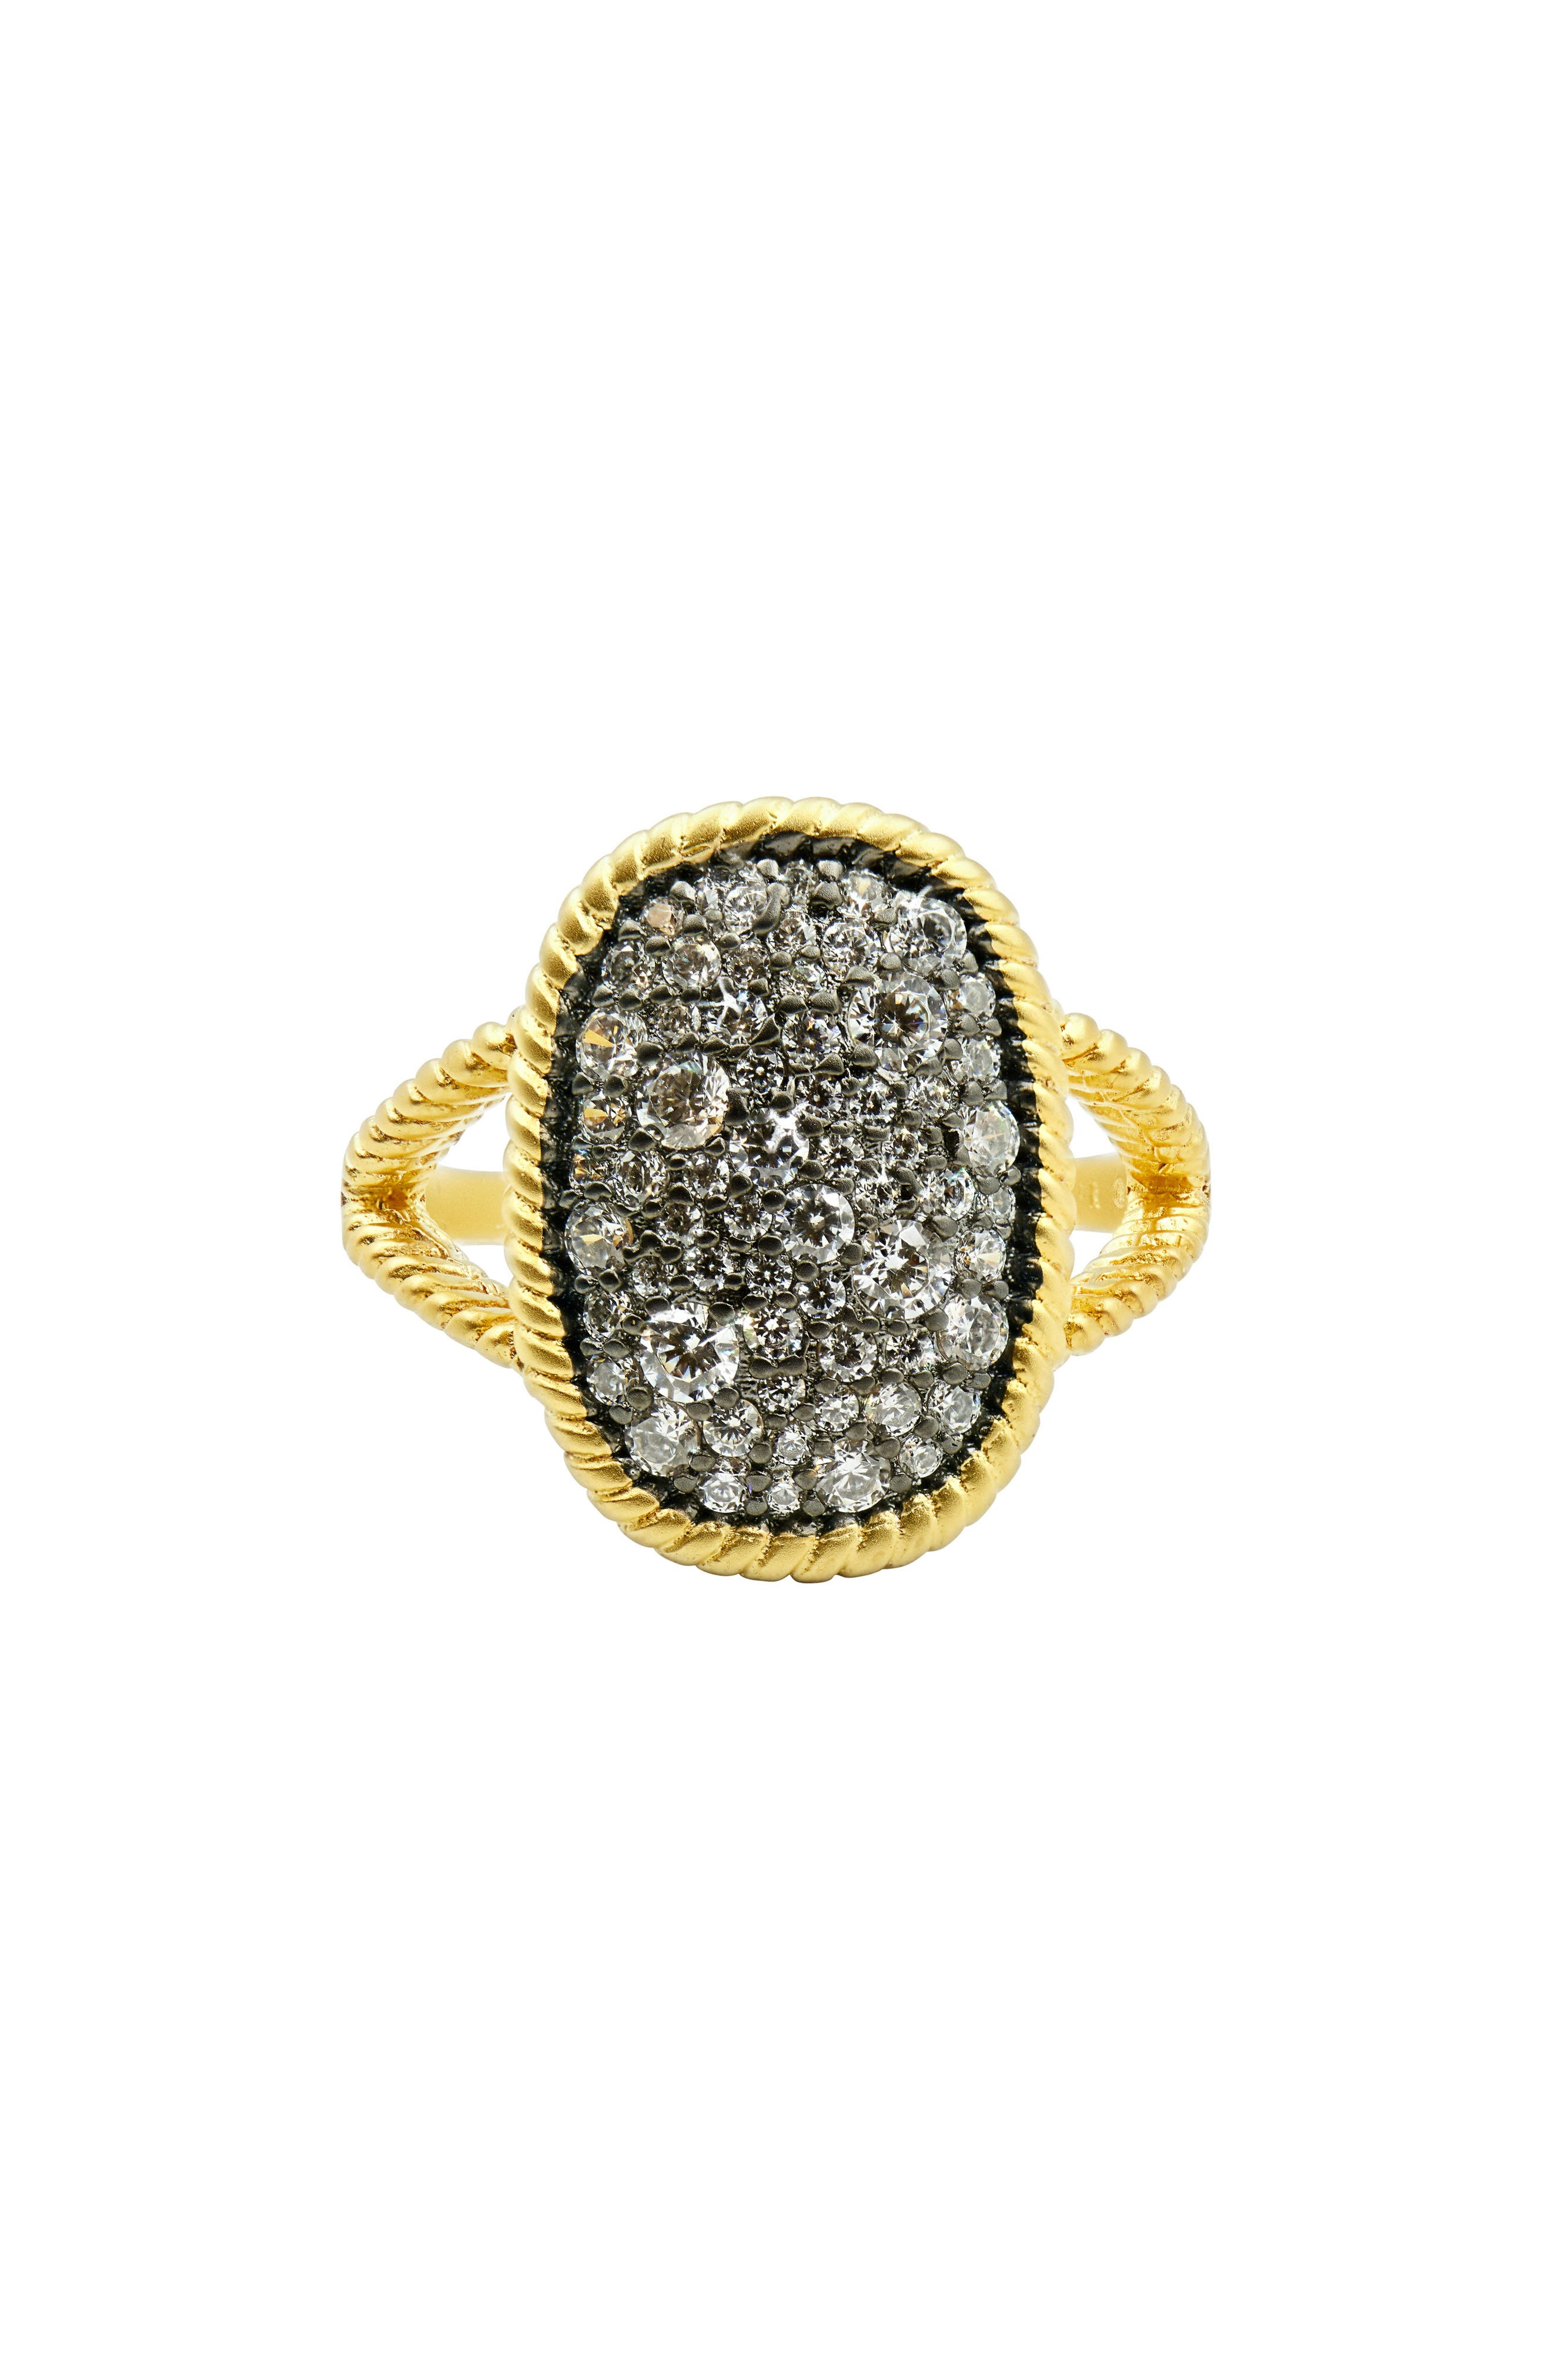 Main Image - FREIDA ROTHMAN Gilded Cable Large Pavé Cocktail Ring